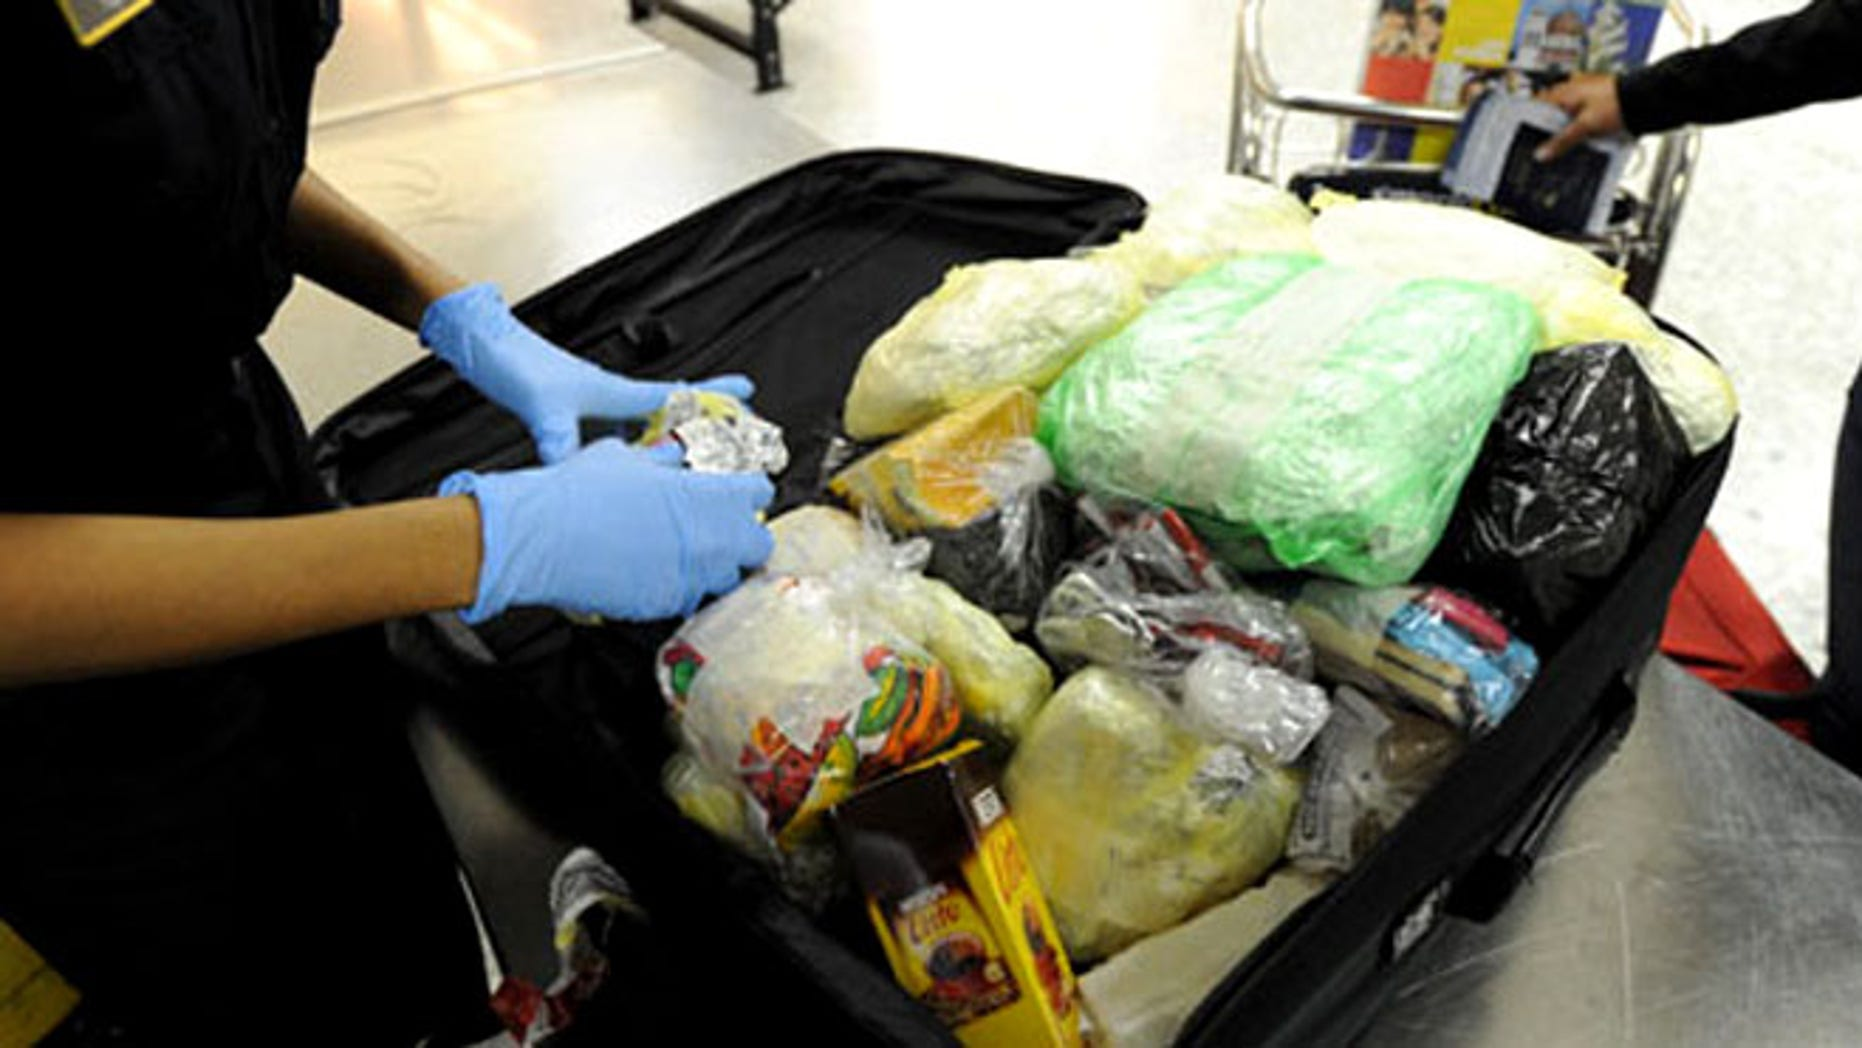 Some seemingly innocuous items can get you busted by U.S. Customs and Border Protection, such as absinthe or soup mix.